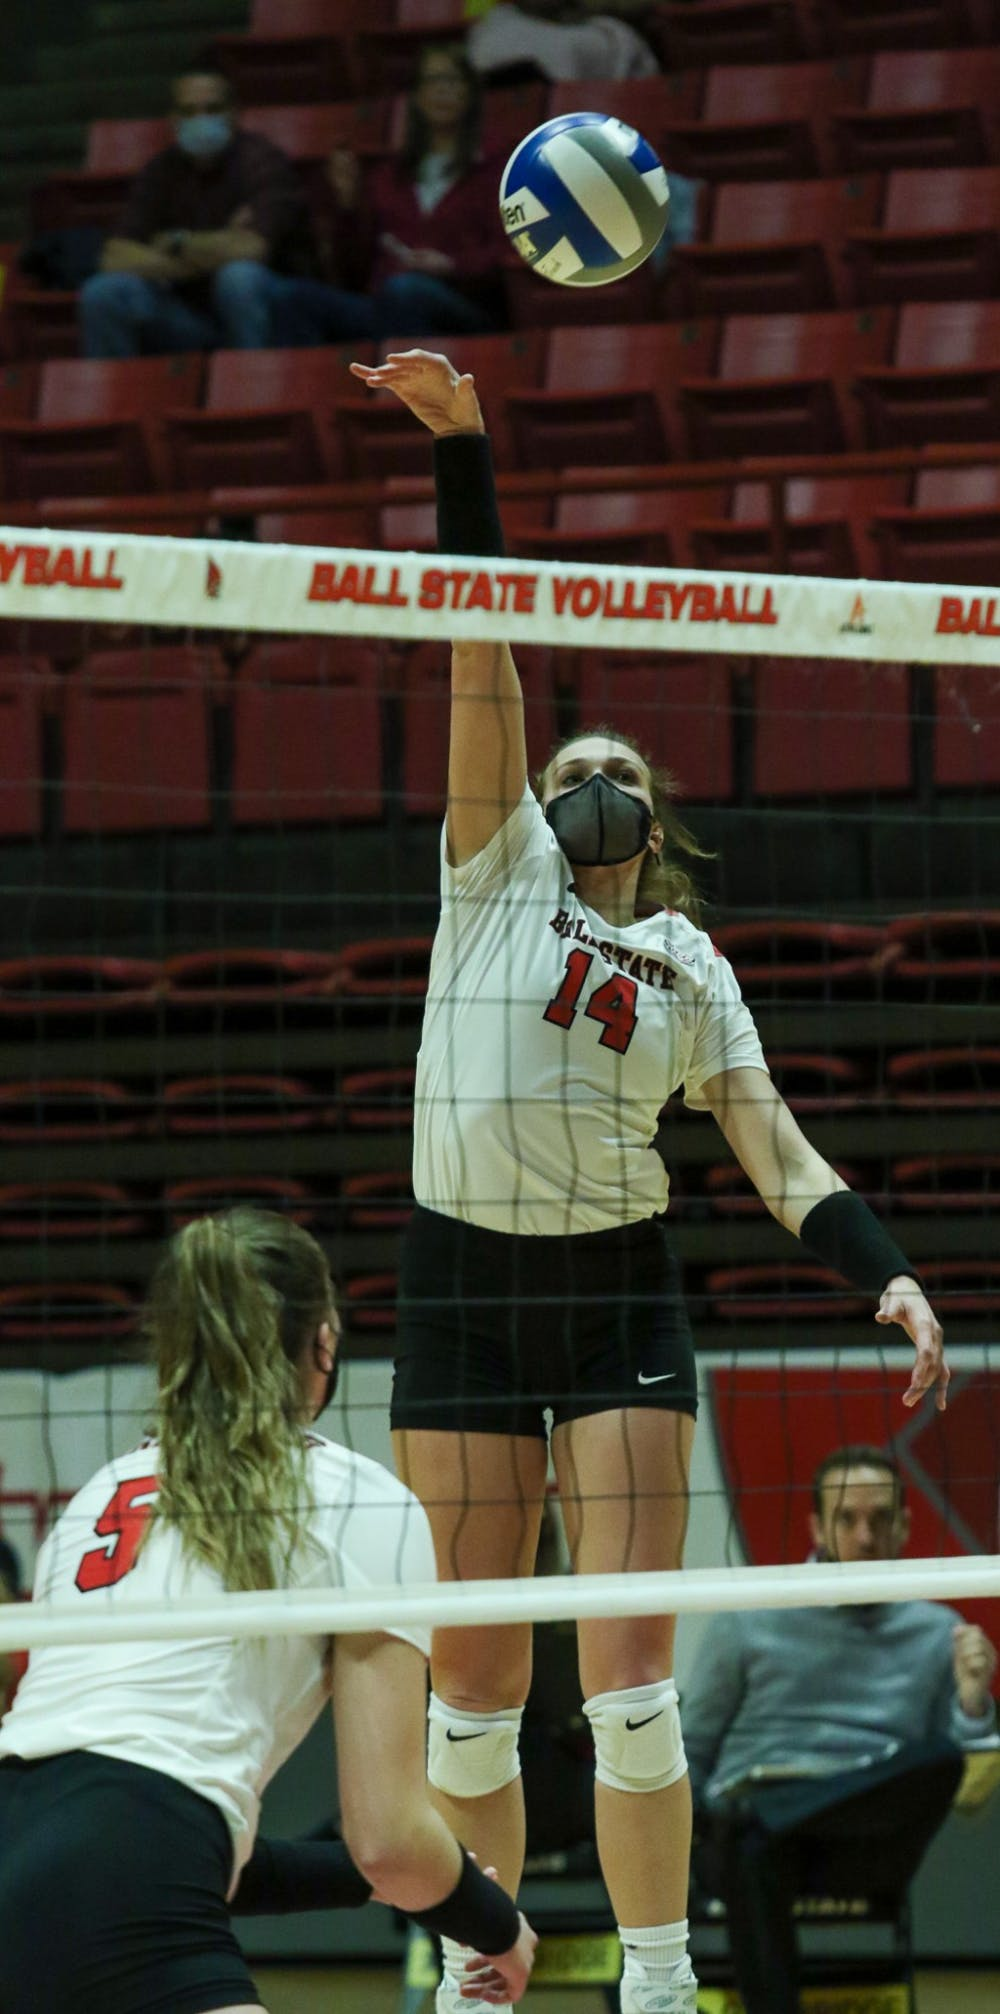 <p>Senior outside hitter Kia Holder hits the ball. The Cardinals fell to the Chippewas 3-1. <strong>Gabi Kramer, DN</strong></p>